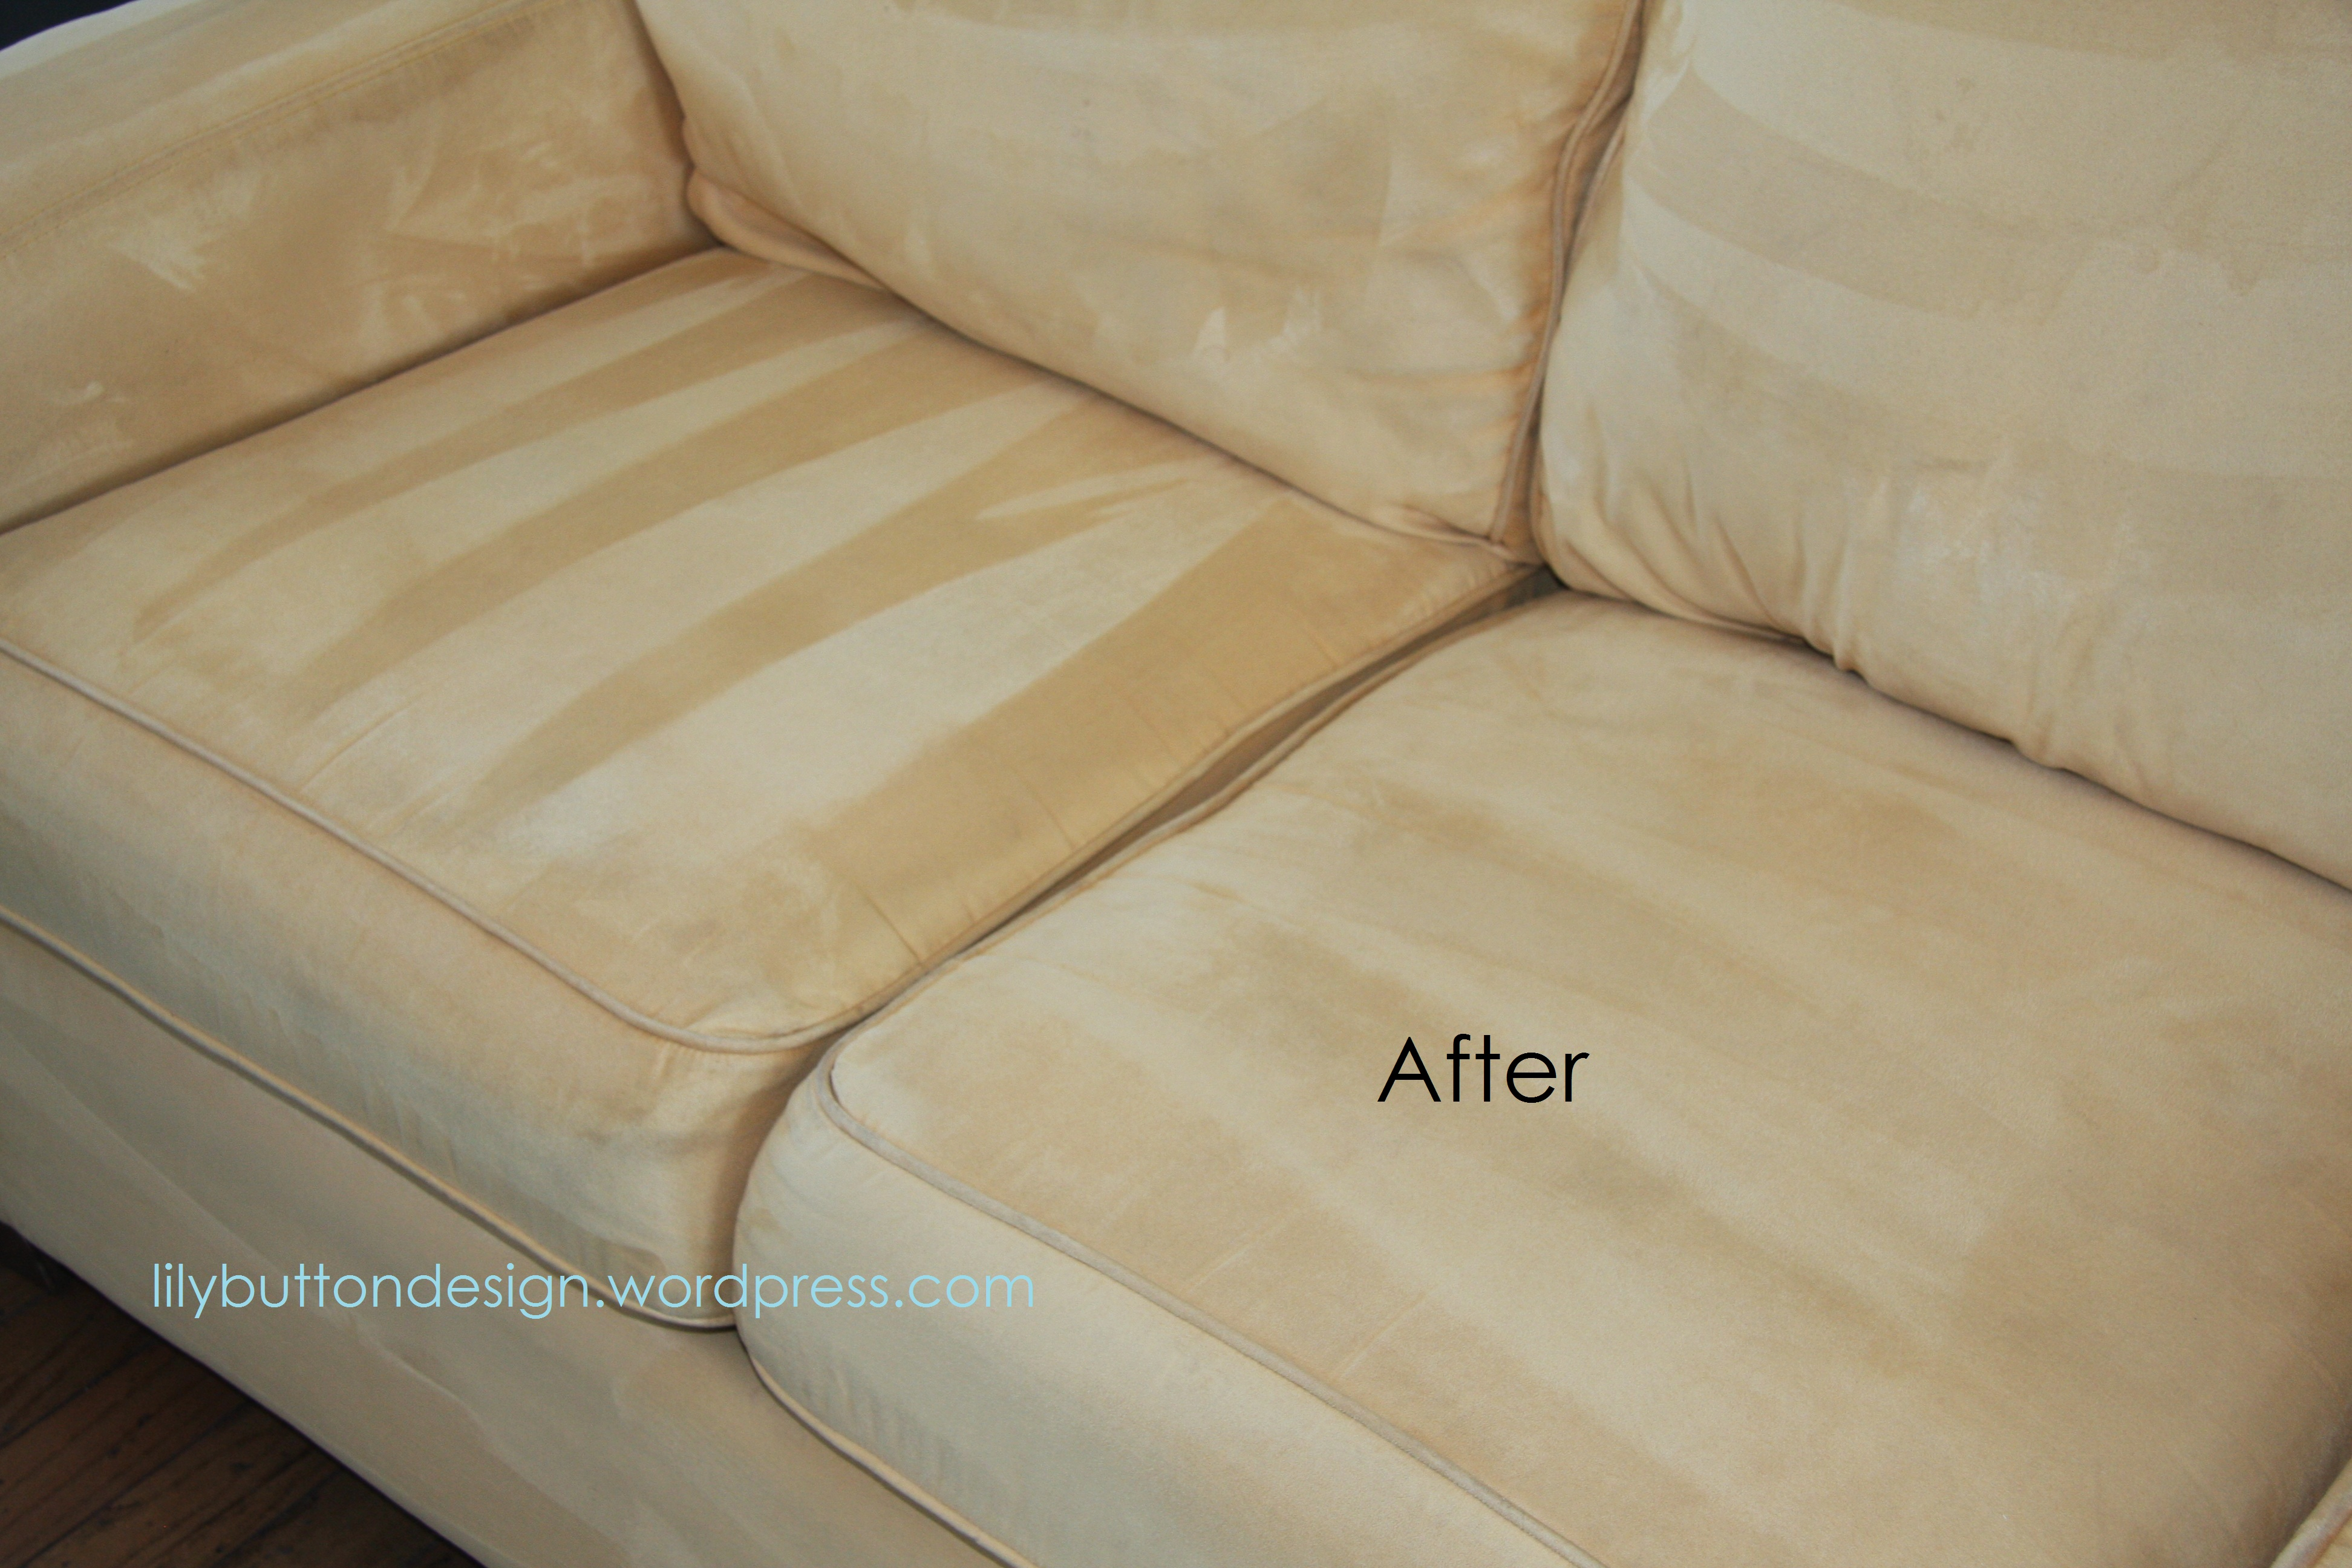 how to clean stains on fabric sofa damon leather reclining sectional reviews a microfiber couch  lilybuttondesign